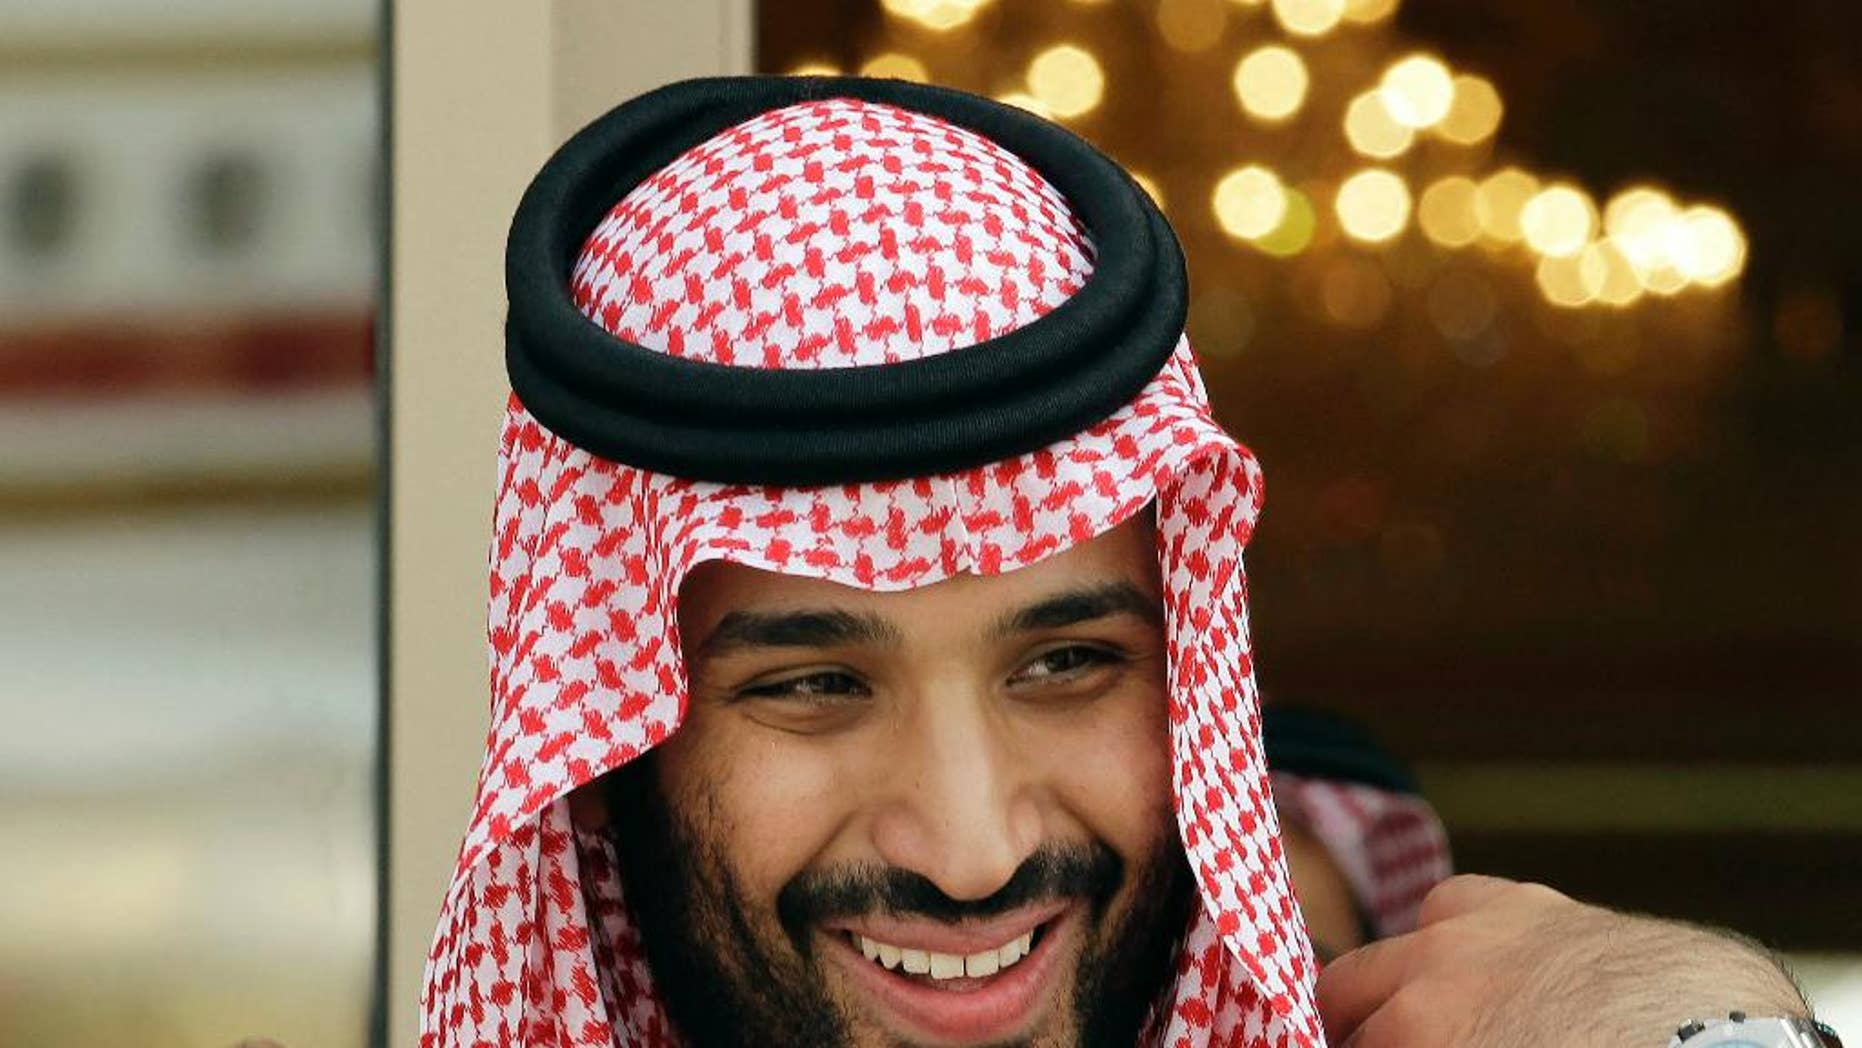 FILE - In this May 14, 2012 file photo, Prince Mohammed bin Salman waits for Gulf Arab leaders ahead of the opening of Gulf Cooperation Council summit, in Riyadh, Saudi Arabia. Saudi Arabia's Deputy Crown Prince Mohammed bin Salman sat down for a rare televised interview Tuesday, May 2, 2017,  evening with Saudi TV, defending his wide-reaching plans for overhauling the country's economy and offering insights into how he views the kingdom's war in Yemen and its tensions with rival Iran. (AP Photo/Hassan Ammar, File)